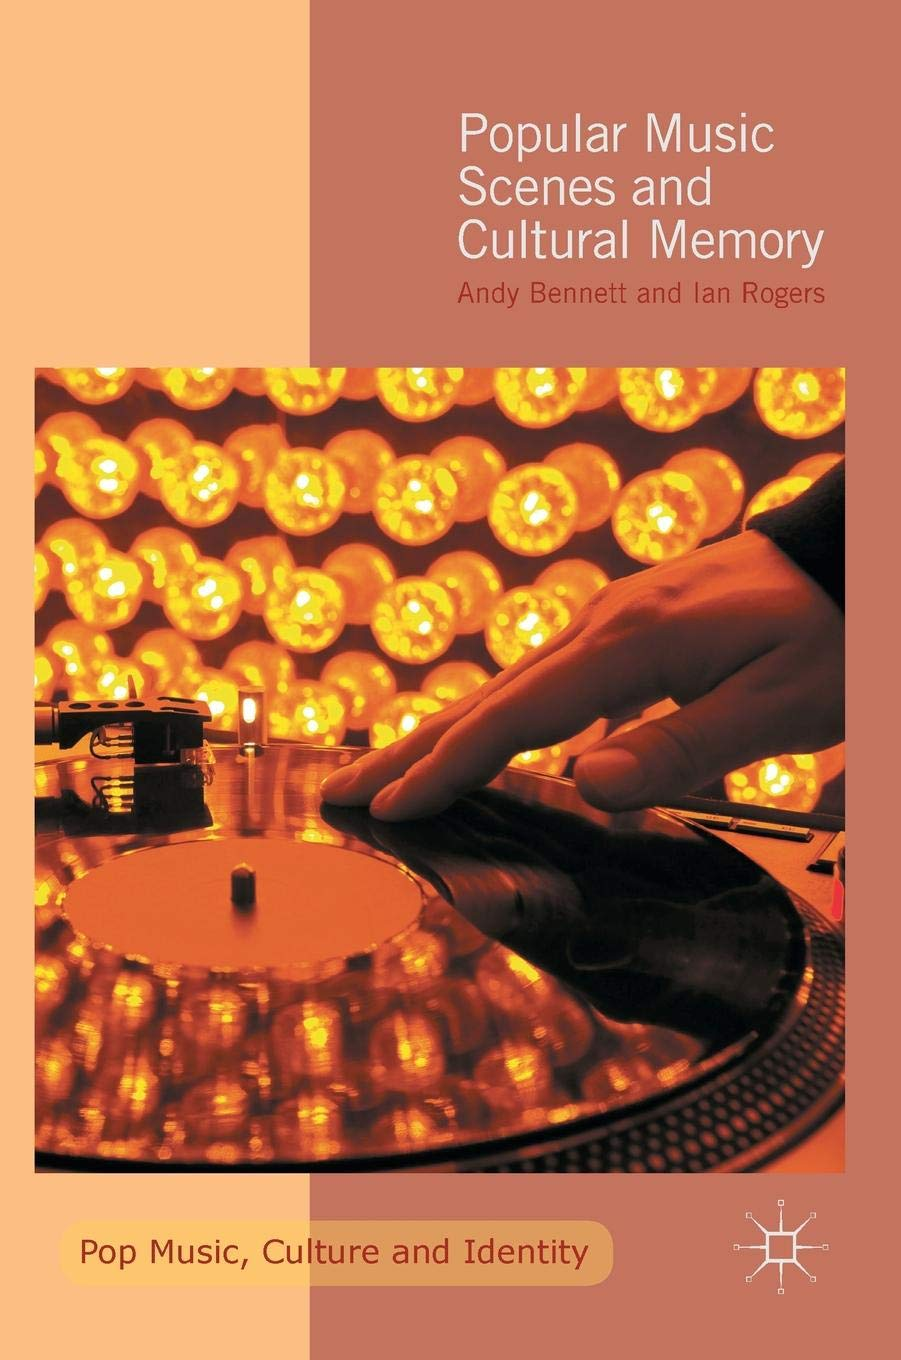 Popular Music Scenes and Cultural Memory (Pop Music, Culture and